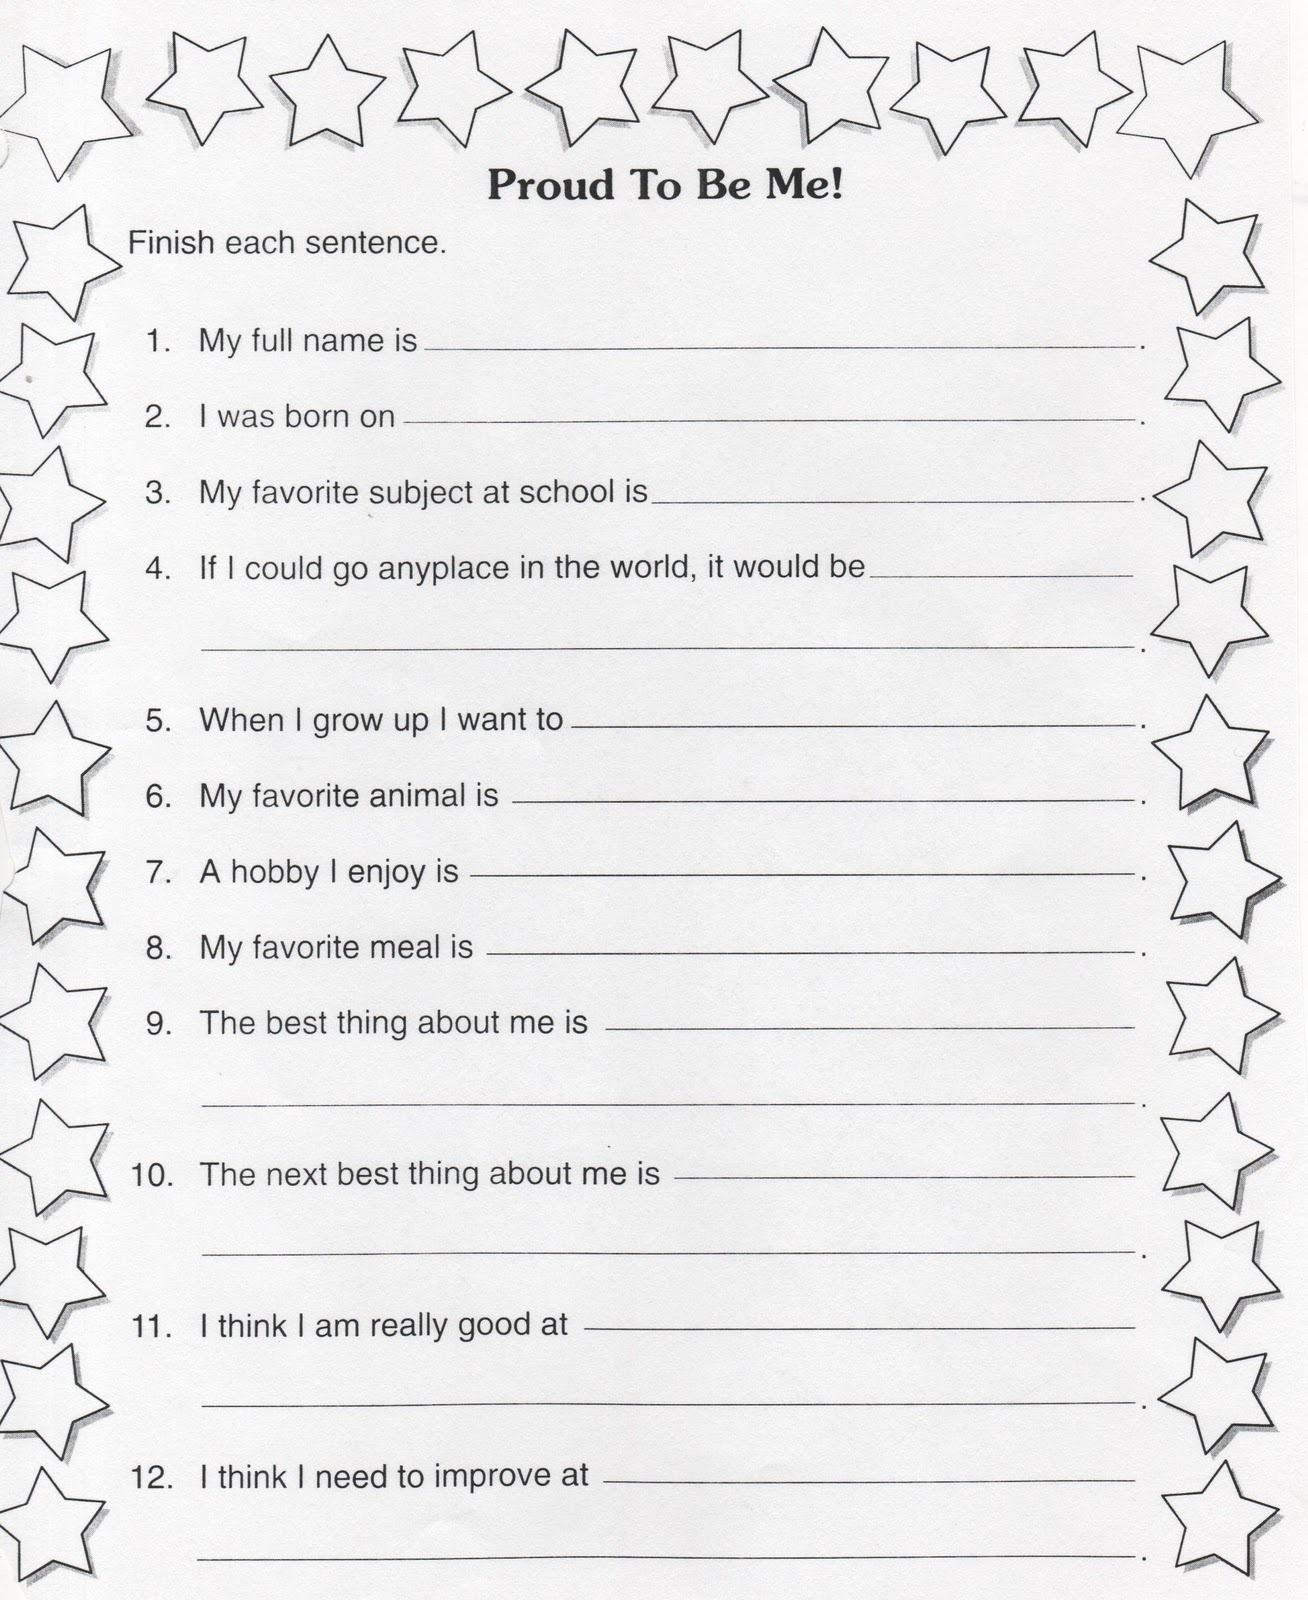 Worksheet Get To Know Me Worksheet Worksheet Fun